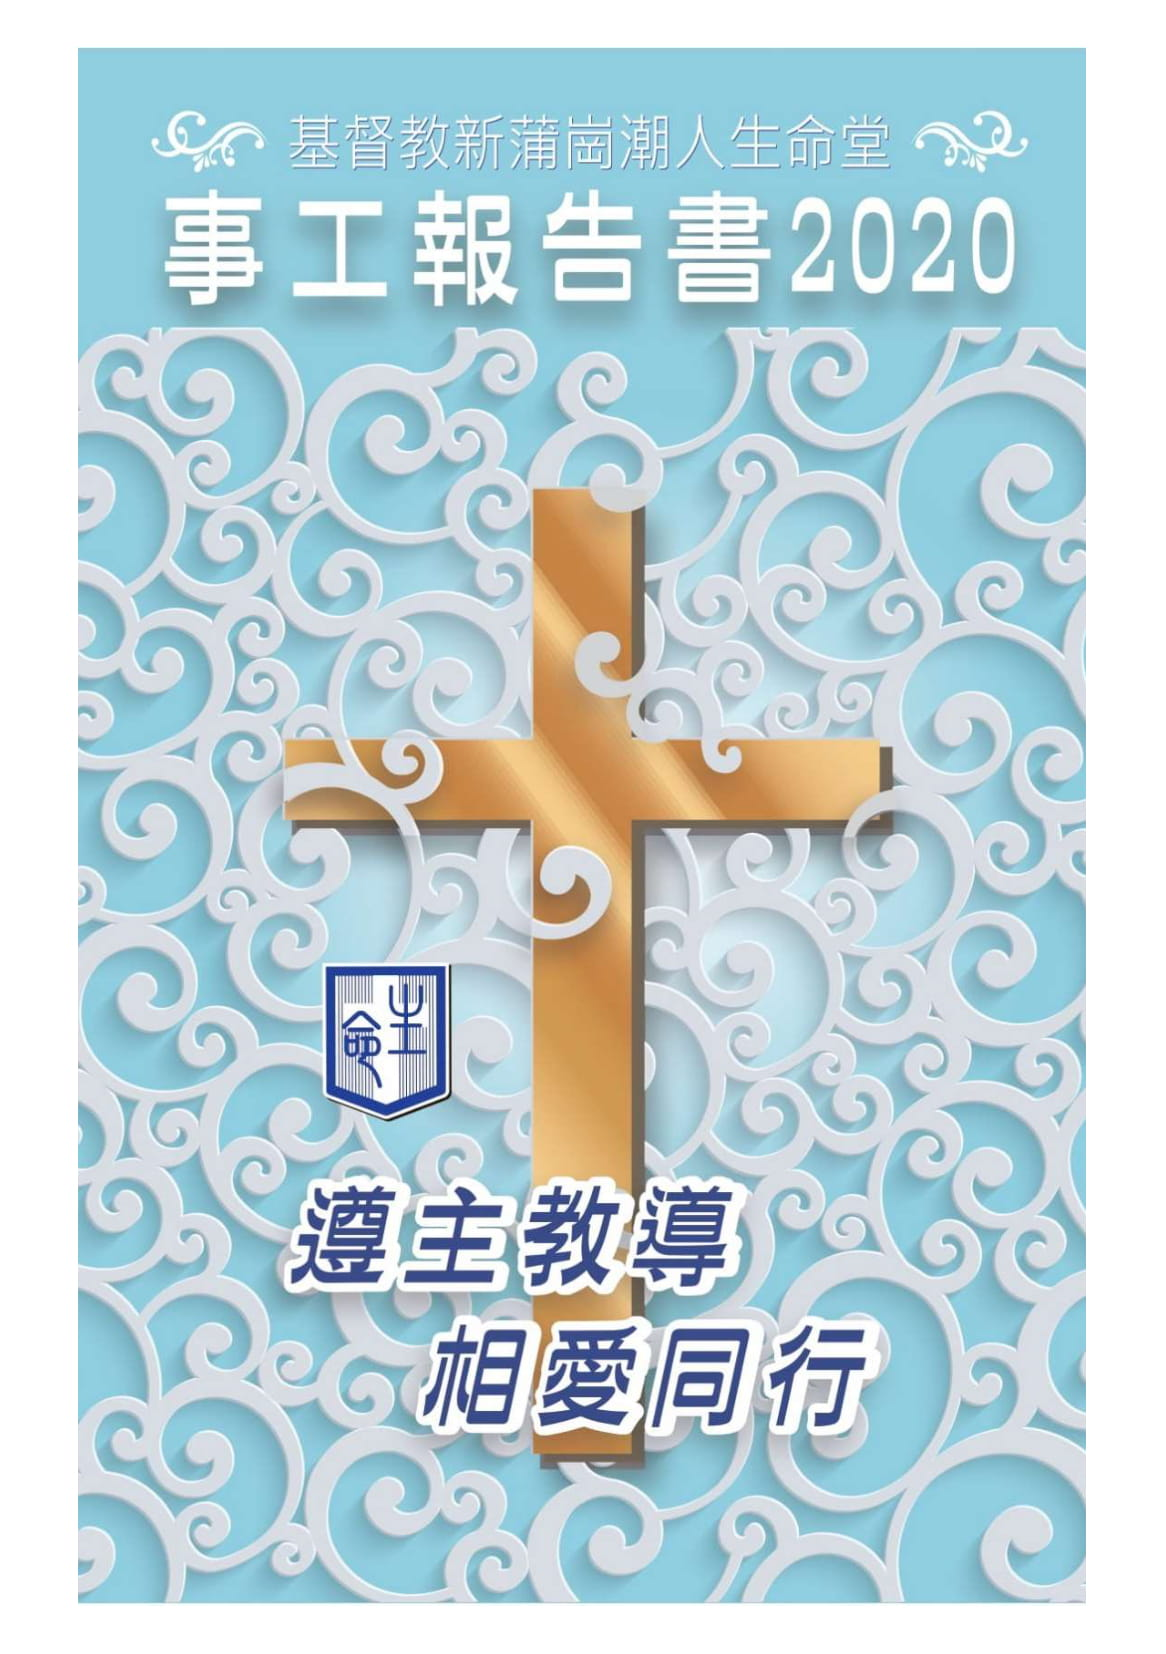 Read more about the article 2020 事工報告書